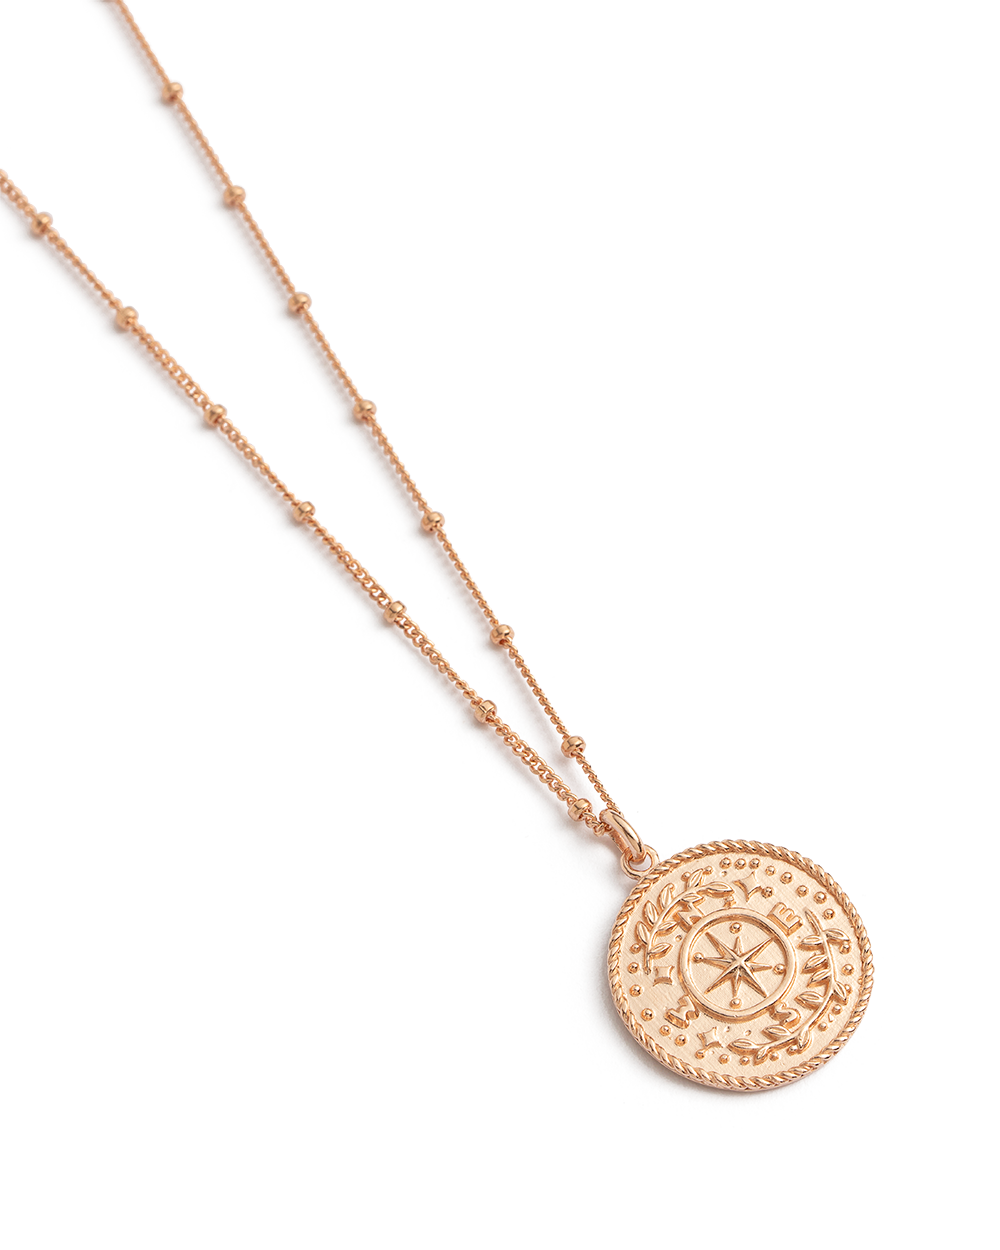 TREASURE COIN NECKLACE (18K-ROSE GOLD-VERMEIL) 02